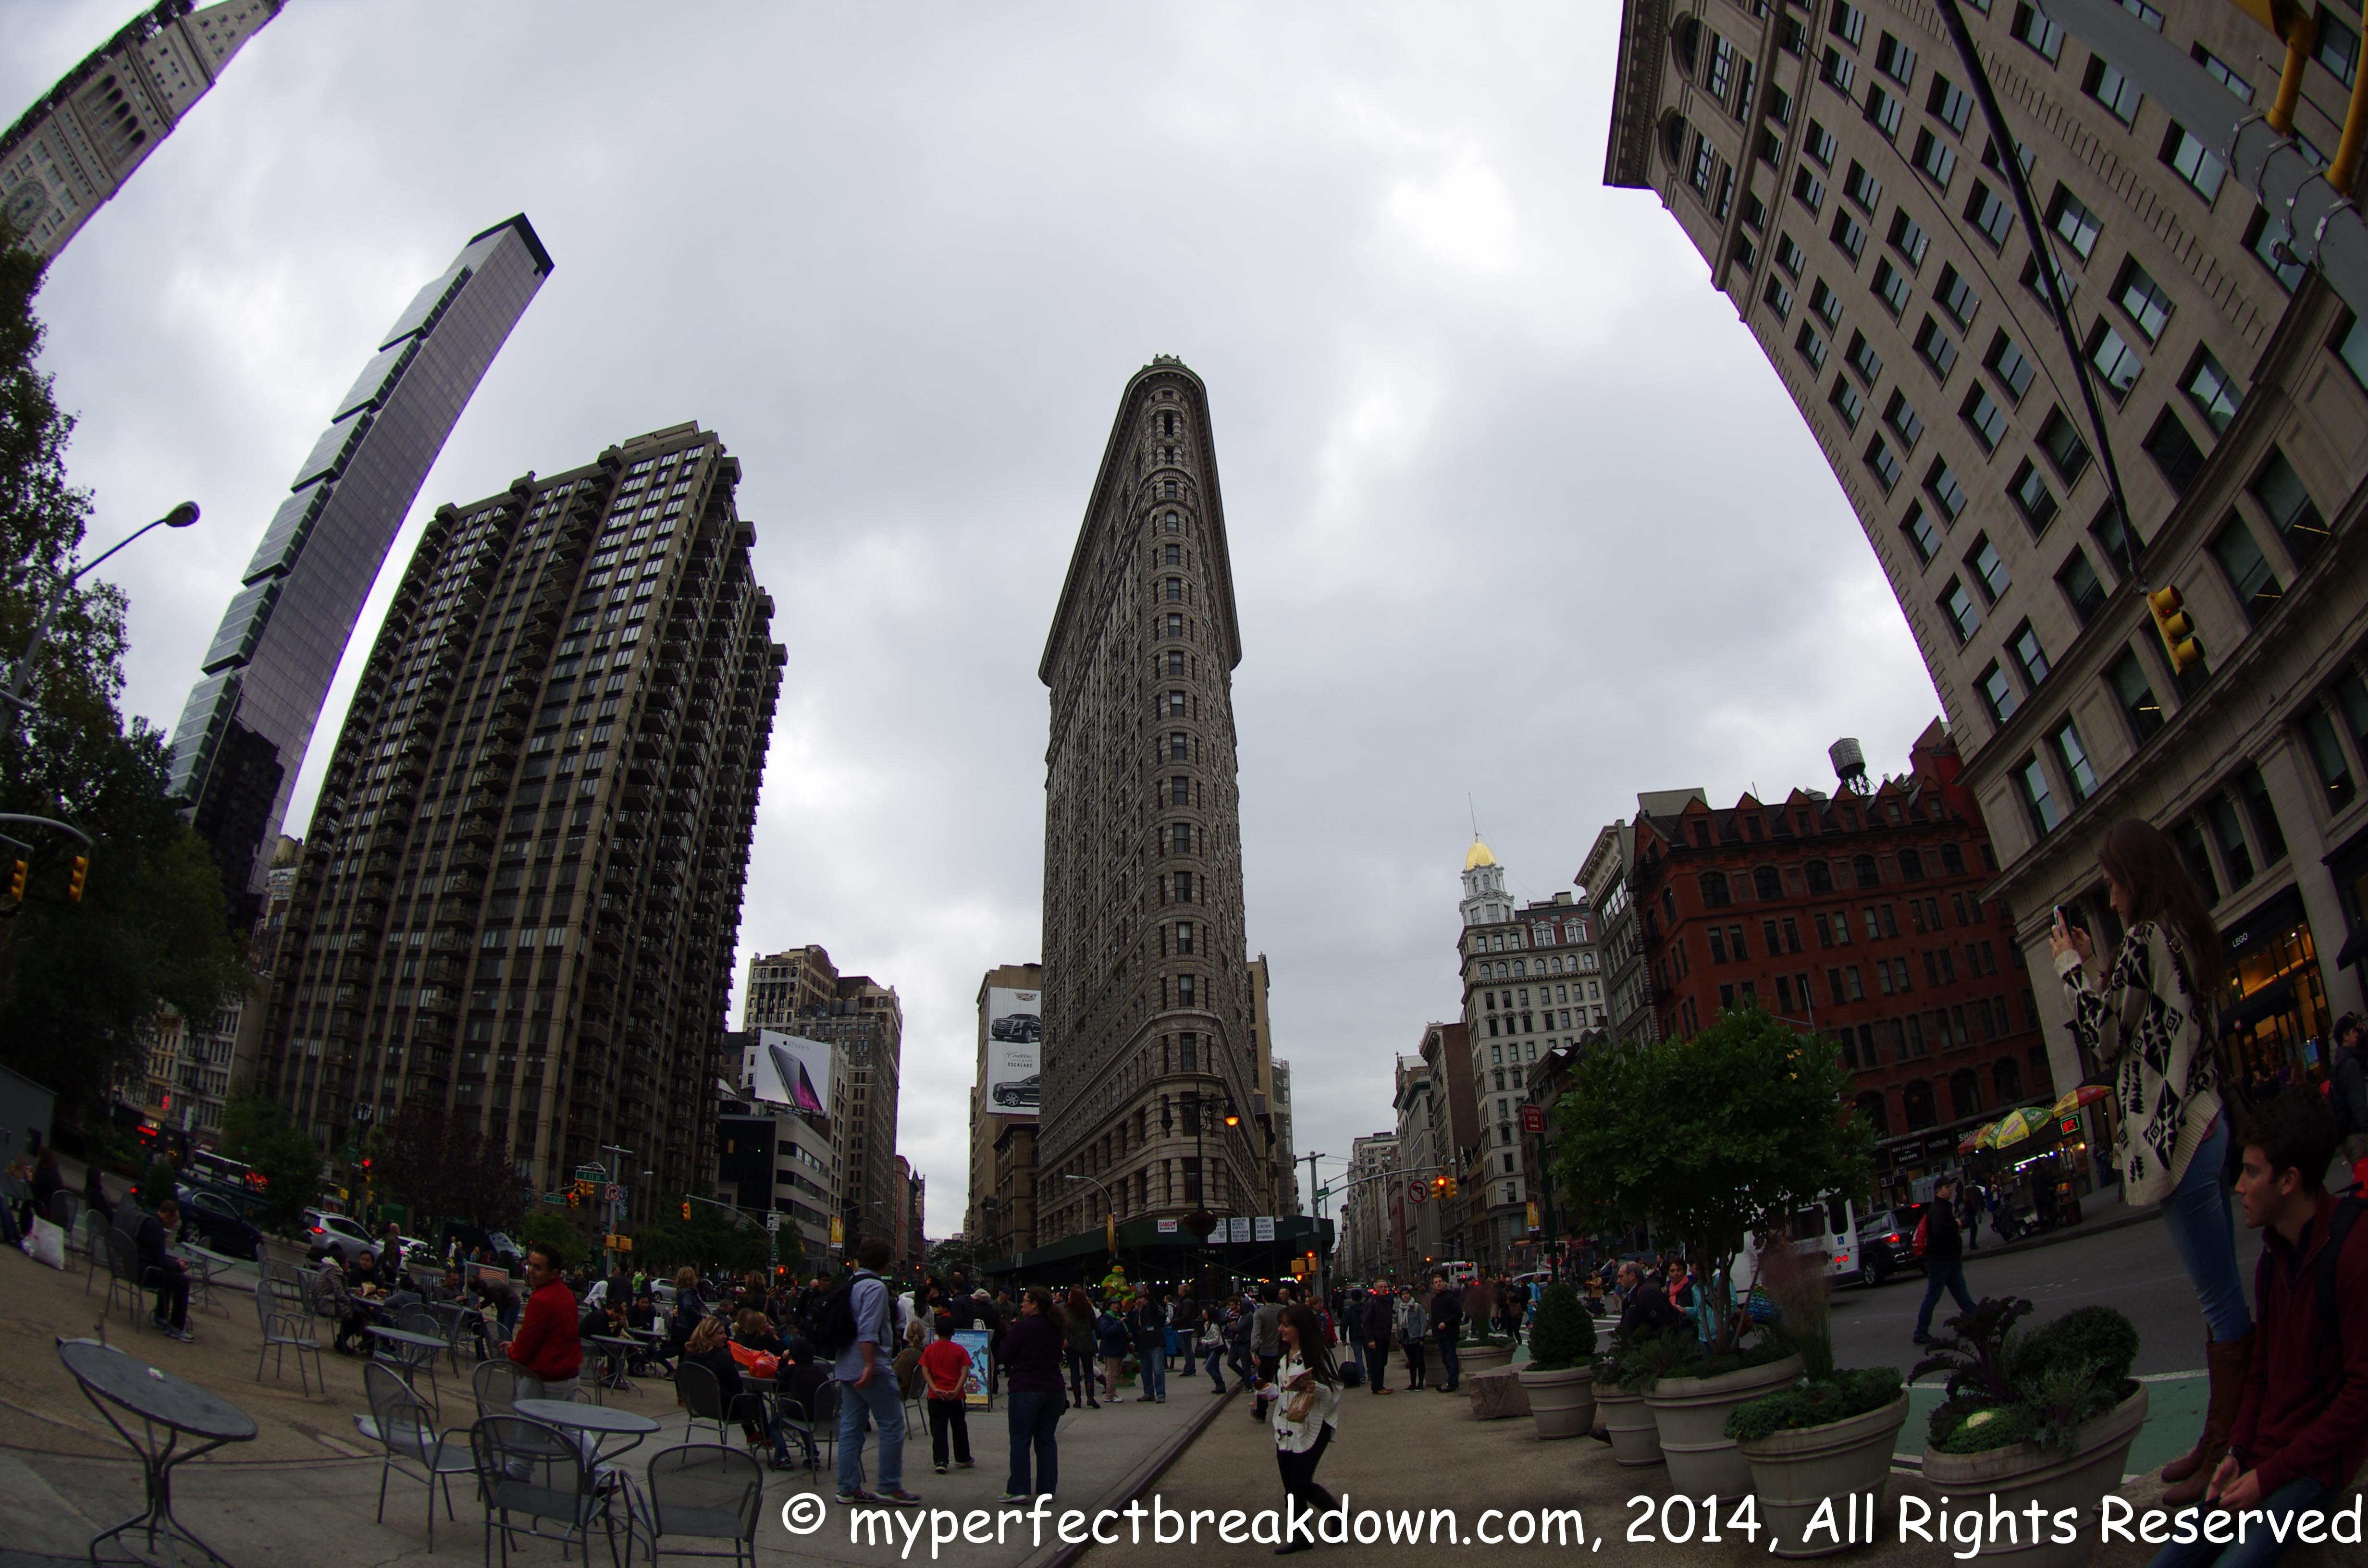 A new york city weekend in pictures my perfect breakdown for Fun in nyc this weekend